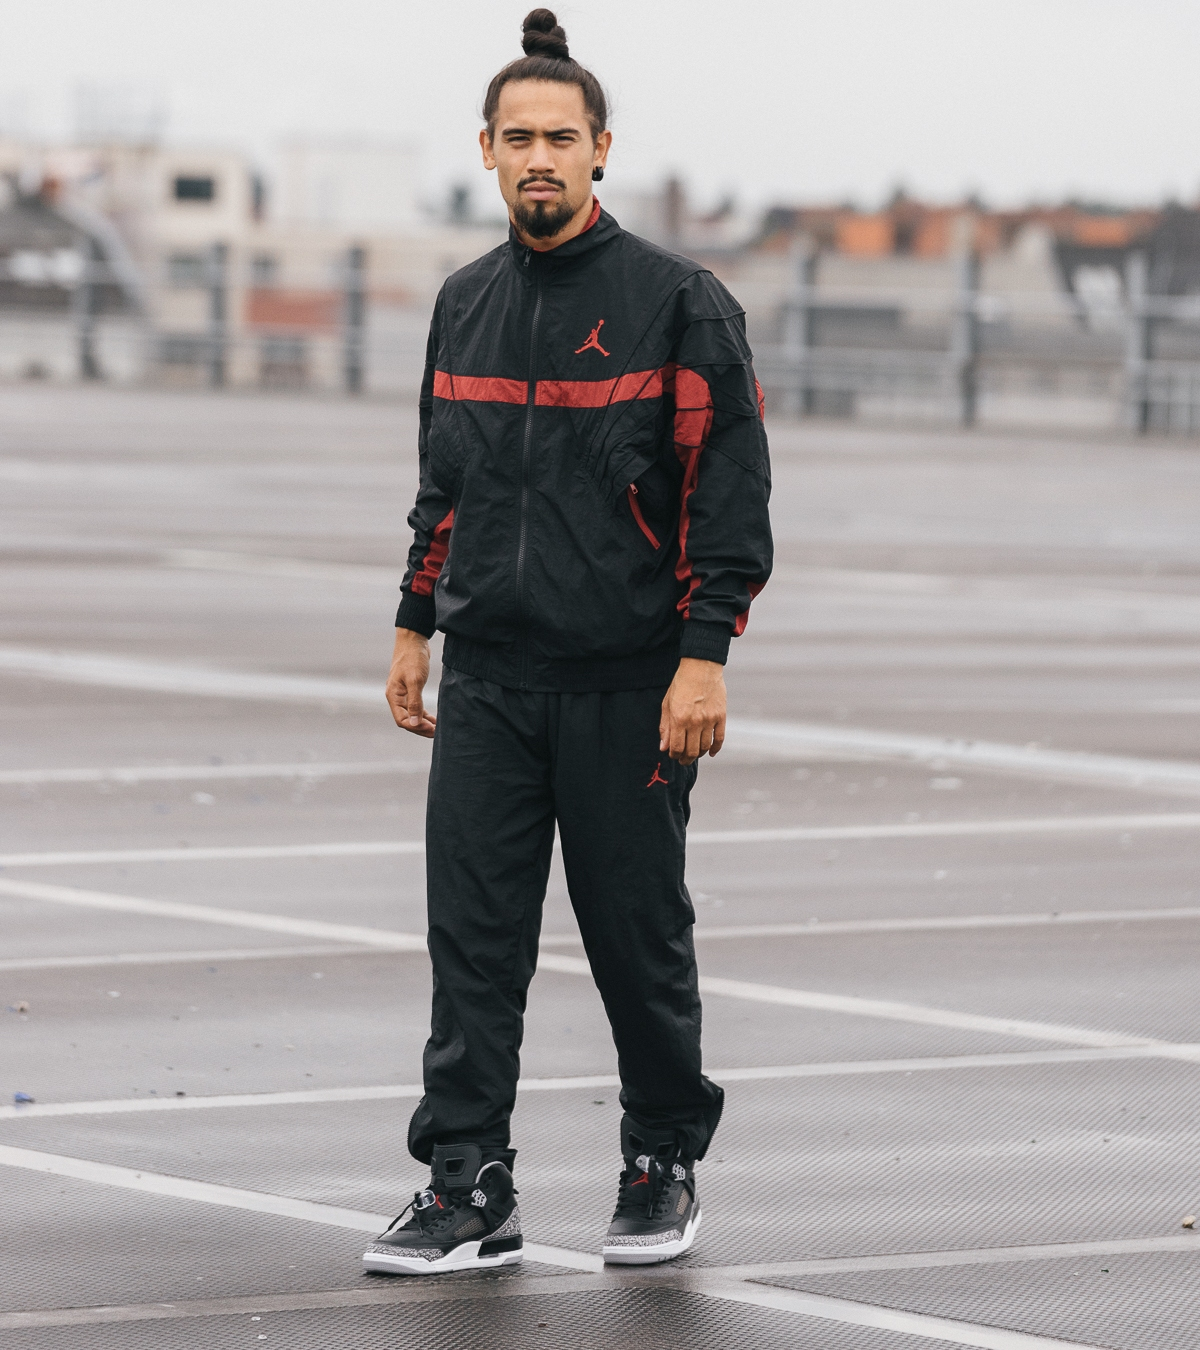 508b73559ad84e The Air Jordan 5 Vault Track Suit Returns - Air 23 - Air Jordan ...